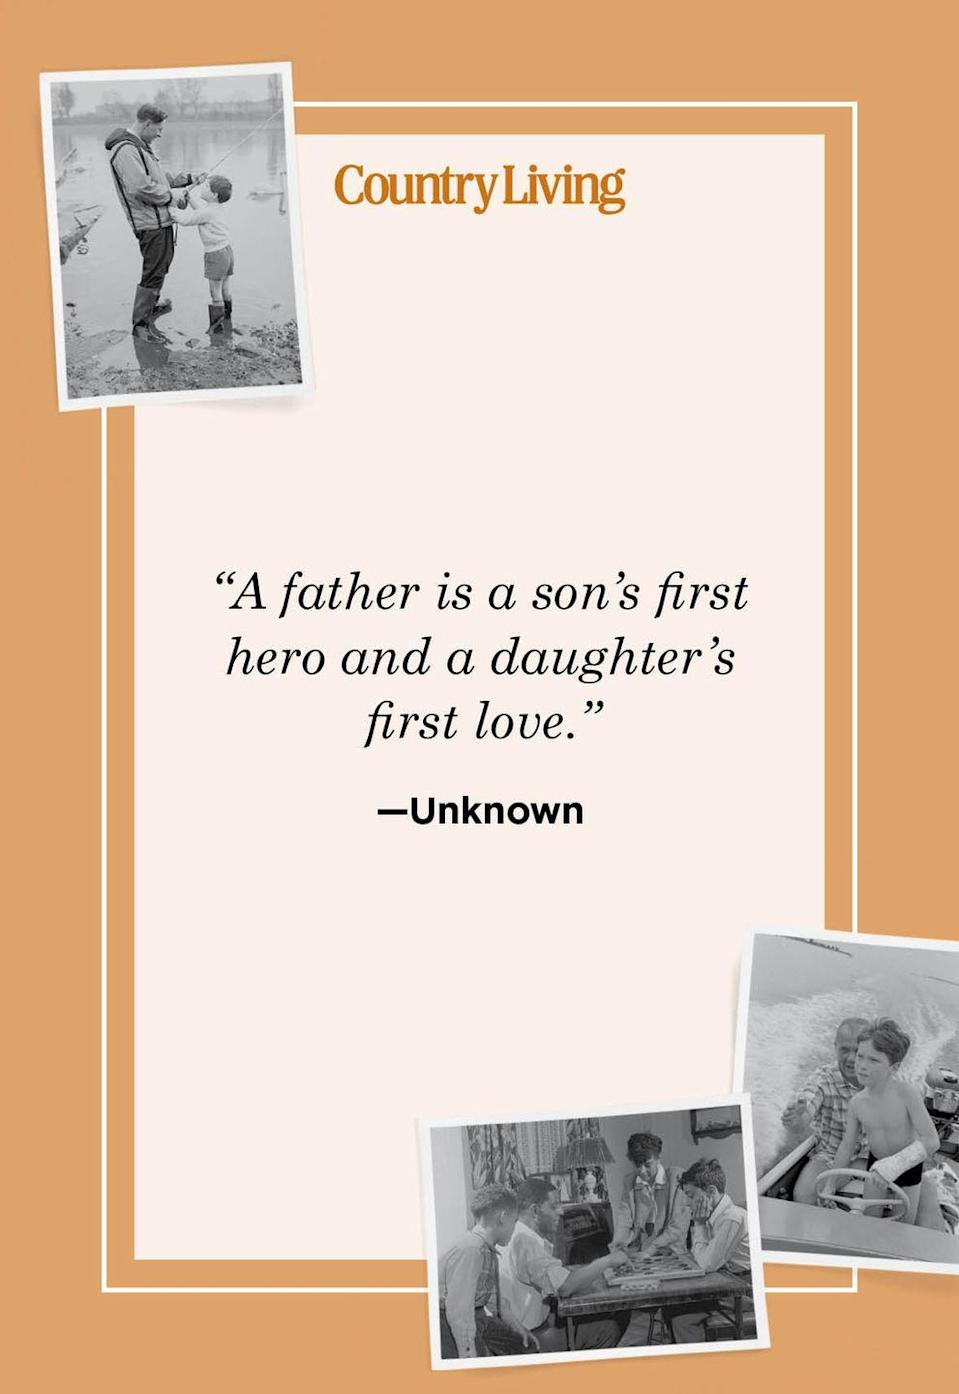 "<p>""A father is a son's first hero and a daughter's first love.""</p>"